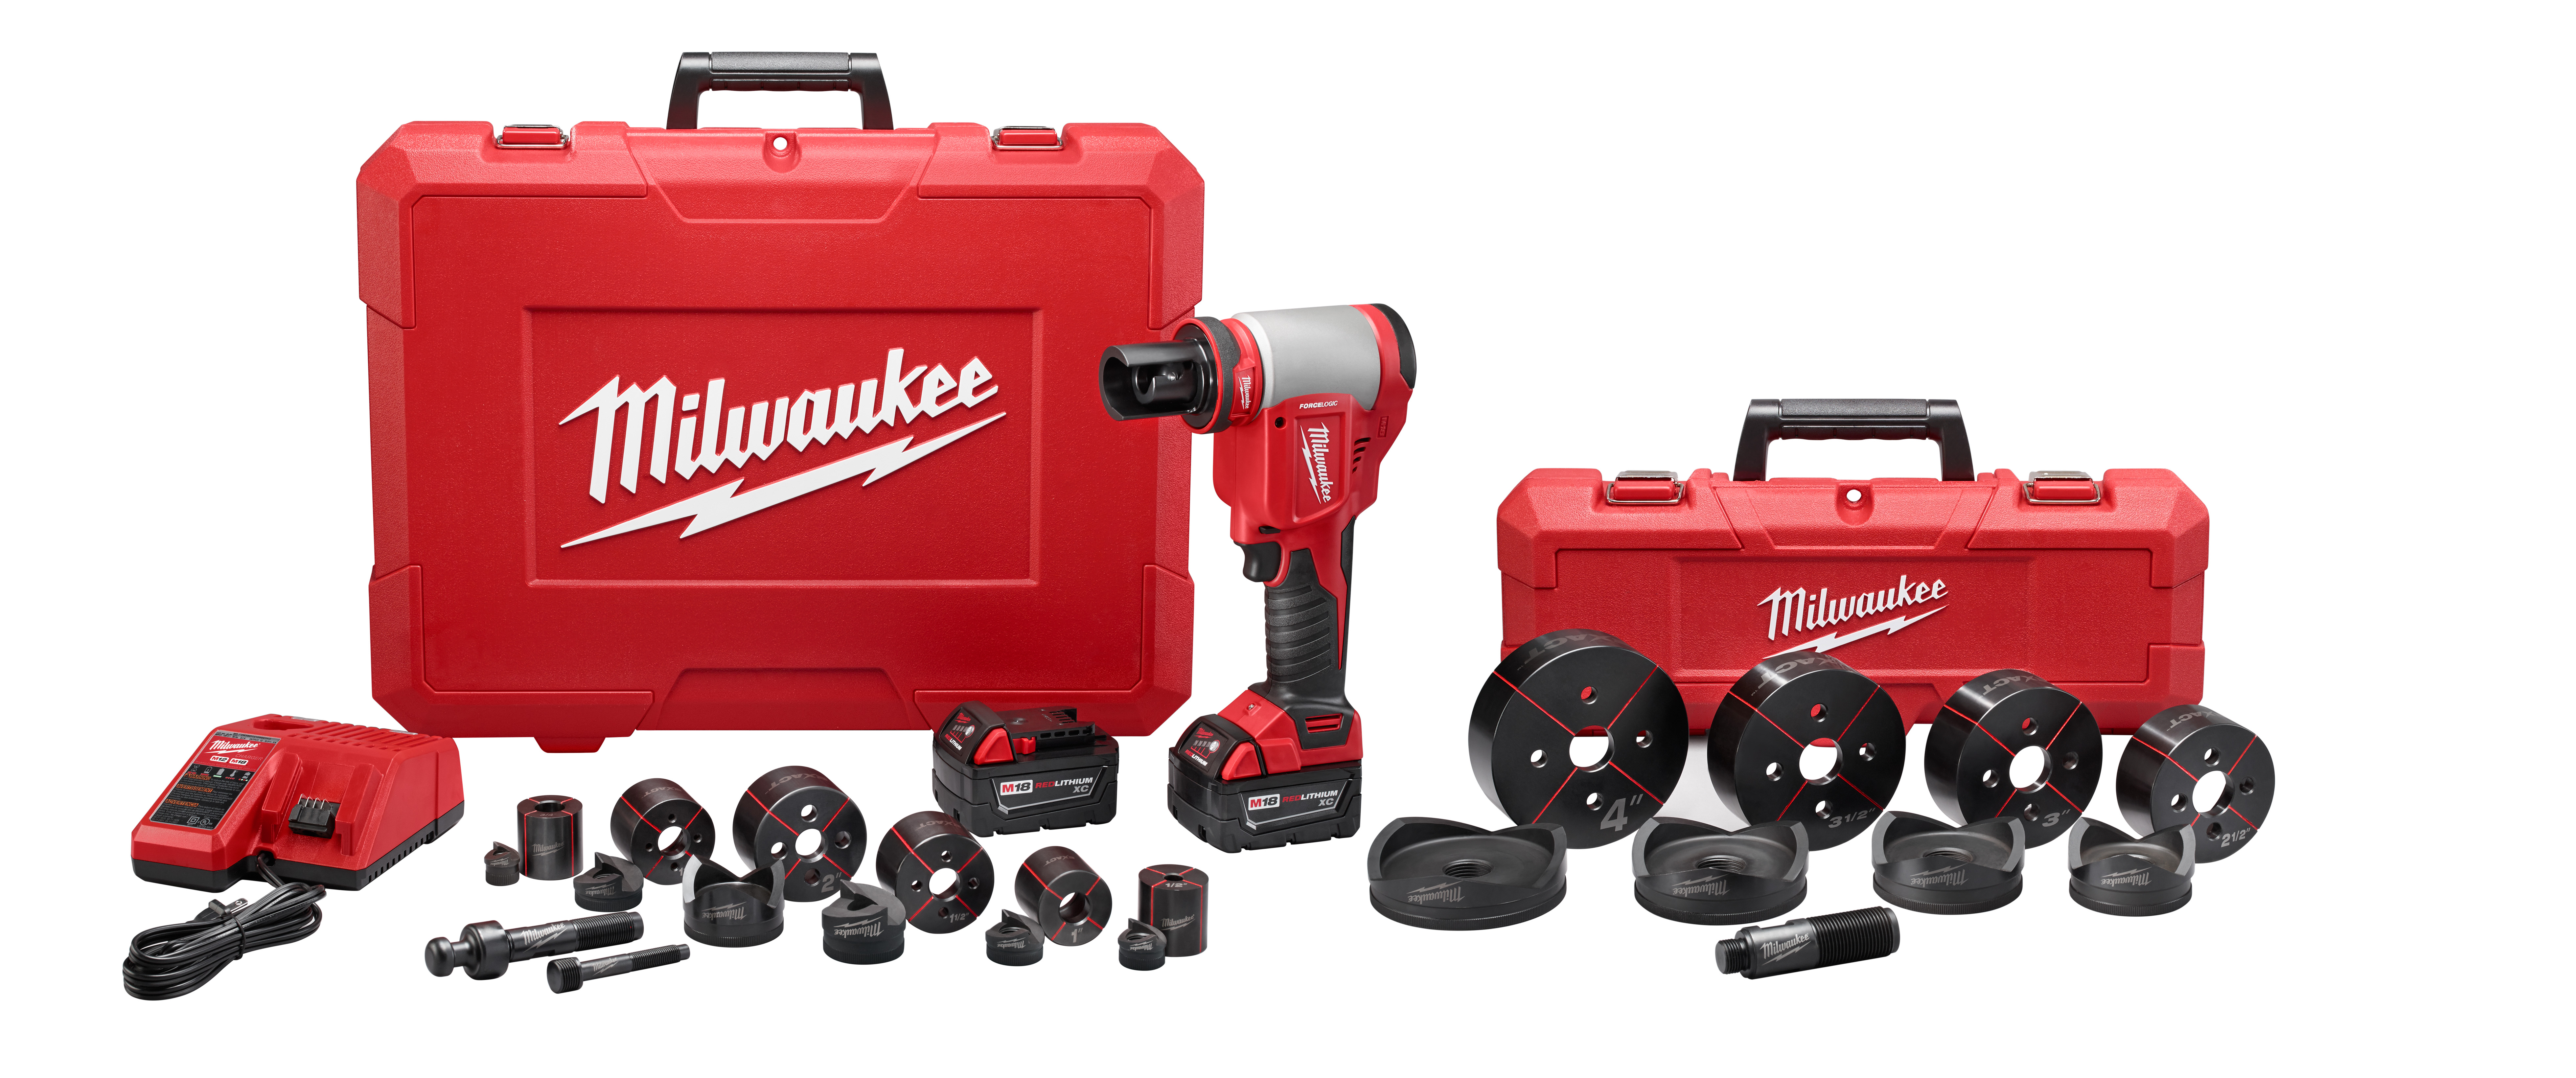 Milwaukee® M18™ 2676-23 FORCE LOGIC™ High Capacity Knockout Tool Kit, 1/2 to 4 in Mild Steel/Stainless Steel Max Cutting, 13.63 in OAL